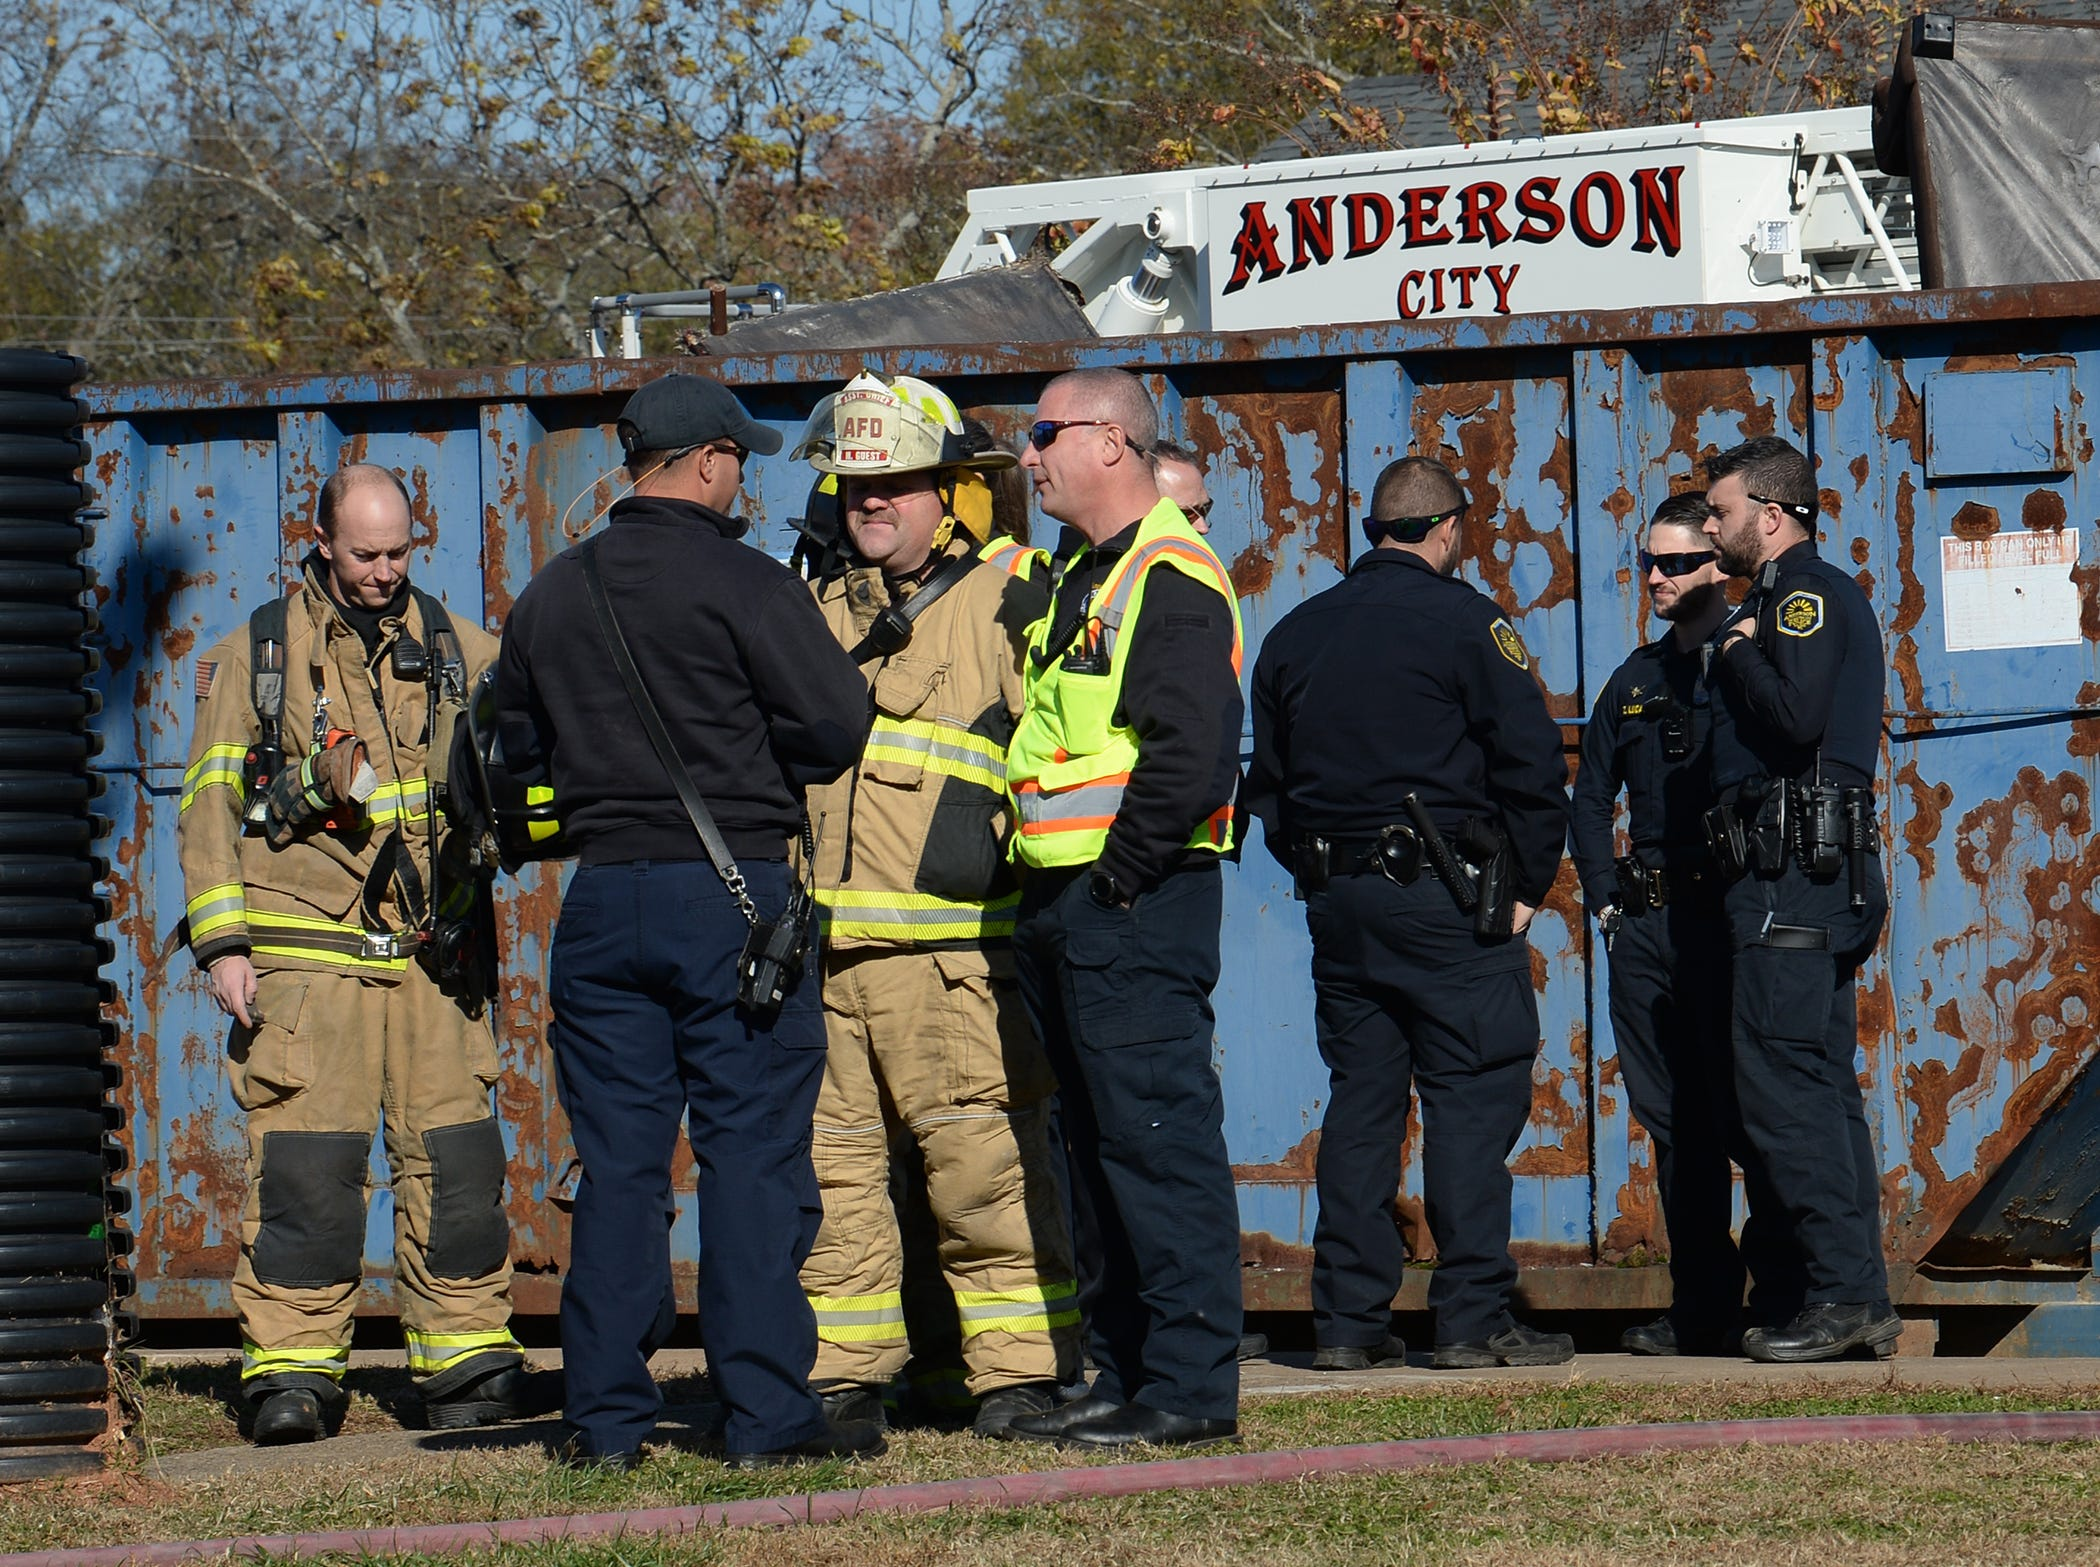 Anderson fire and city police respond to a fire in building 8 of the Friendship Court Apartments in Anderson on Tuesday.